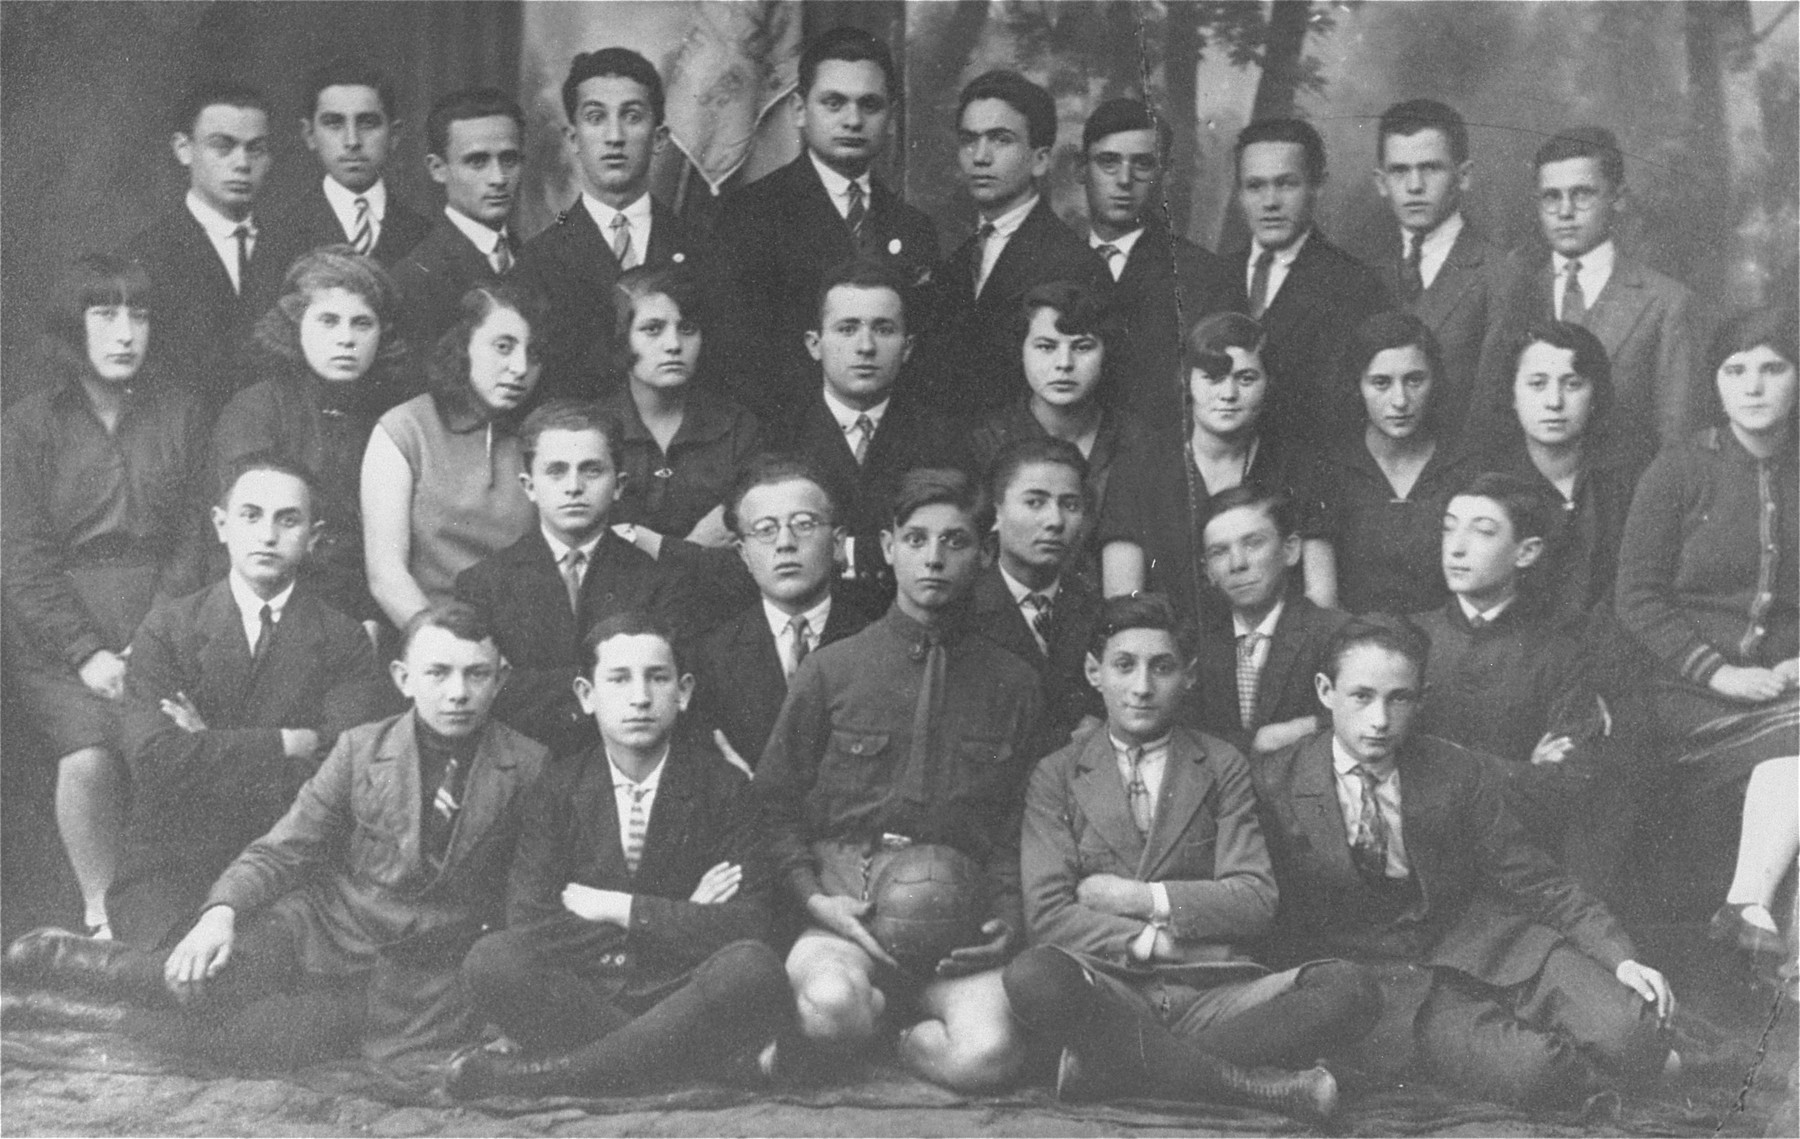 Group portrait of members of the Maccabi Jewish sports club in Kozienice.  Among those pictured are: Edzia Kestenberg (third row, second from theleft), Karpman (second row, second from the left), Ester Diamand (third row, sixth from the left) and Malka Raizel Lichtenstein (third row, fourth from the right).